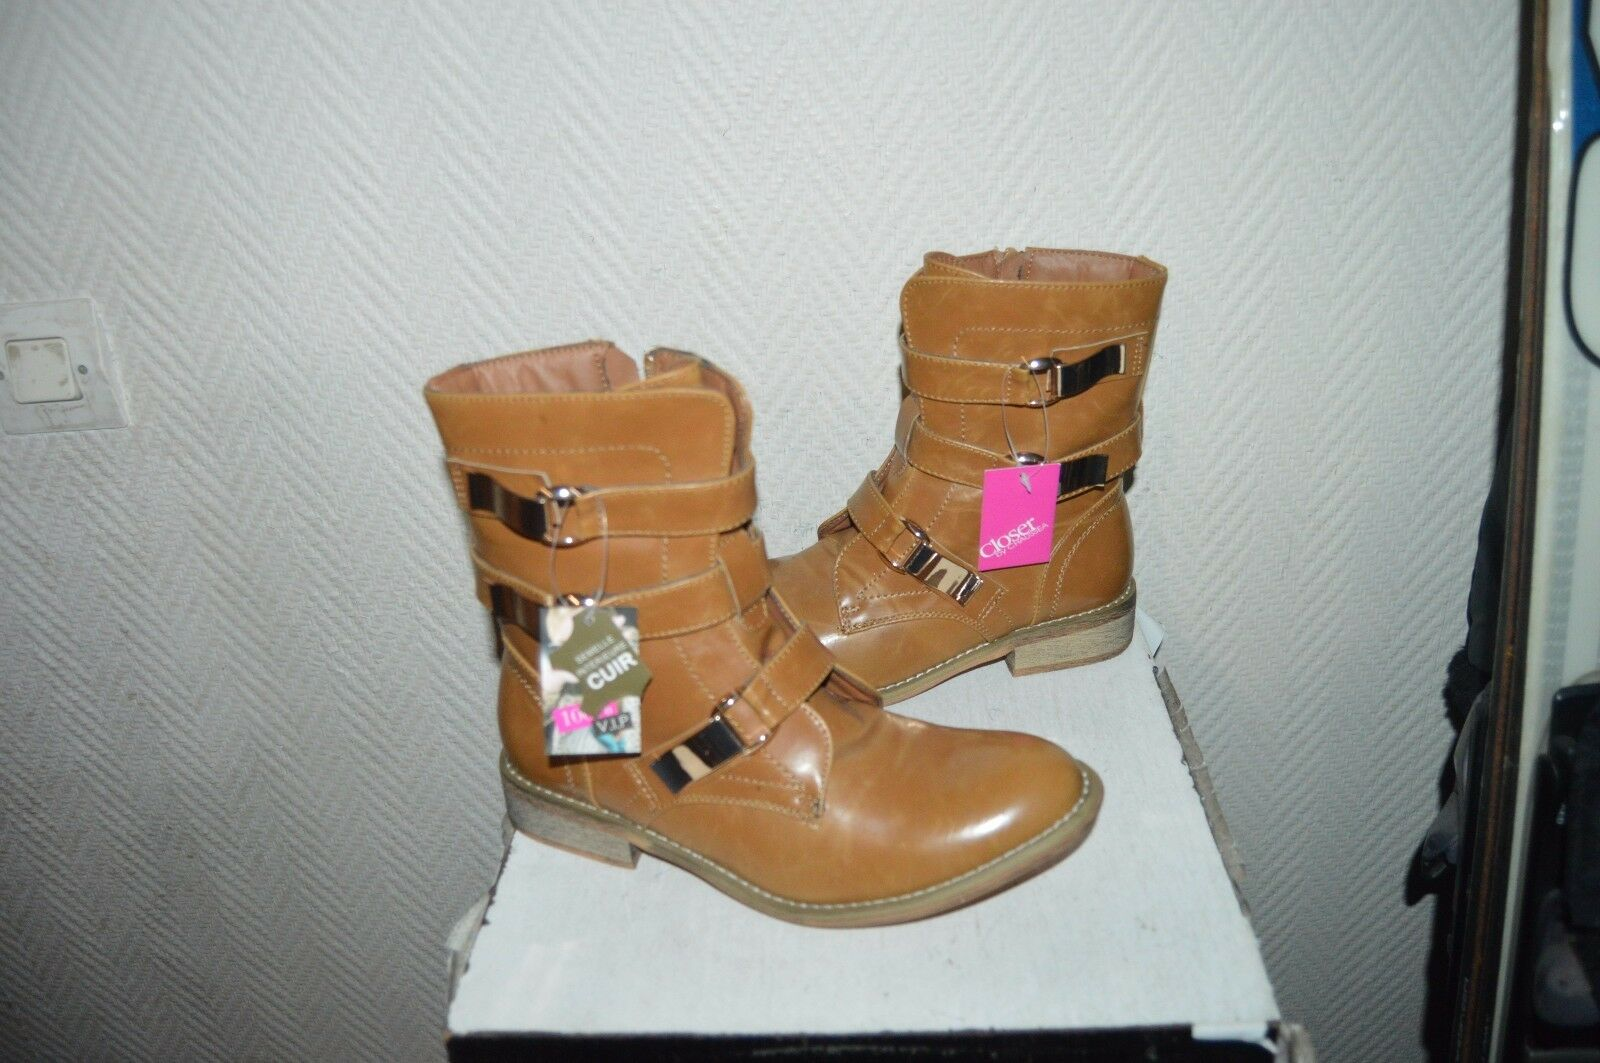 BOTTINE BOTTE CLOSER NEUF  TAILLE 39 /BOOTS/BOTAS/R<wbr/>ANGERS/STIVALI CUIR INT